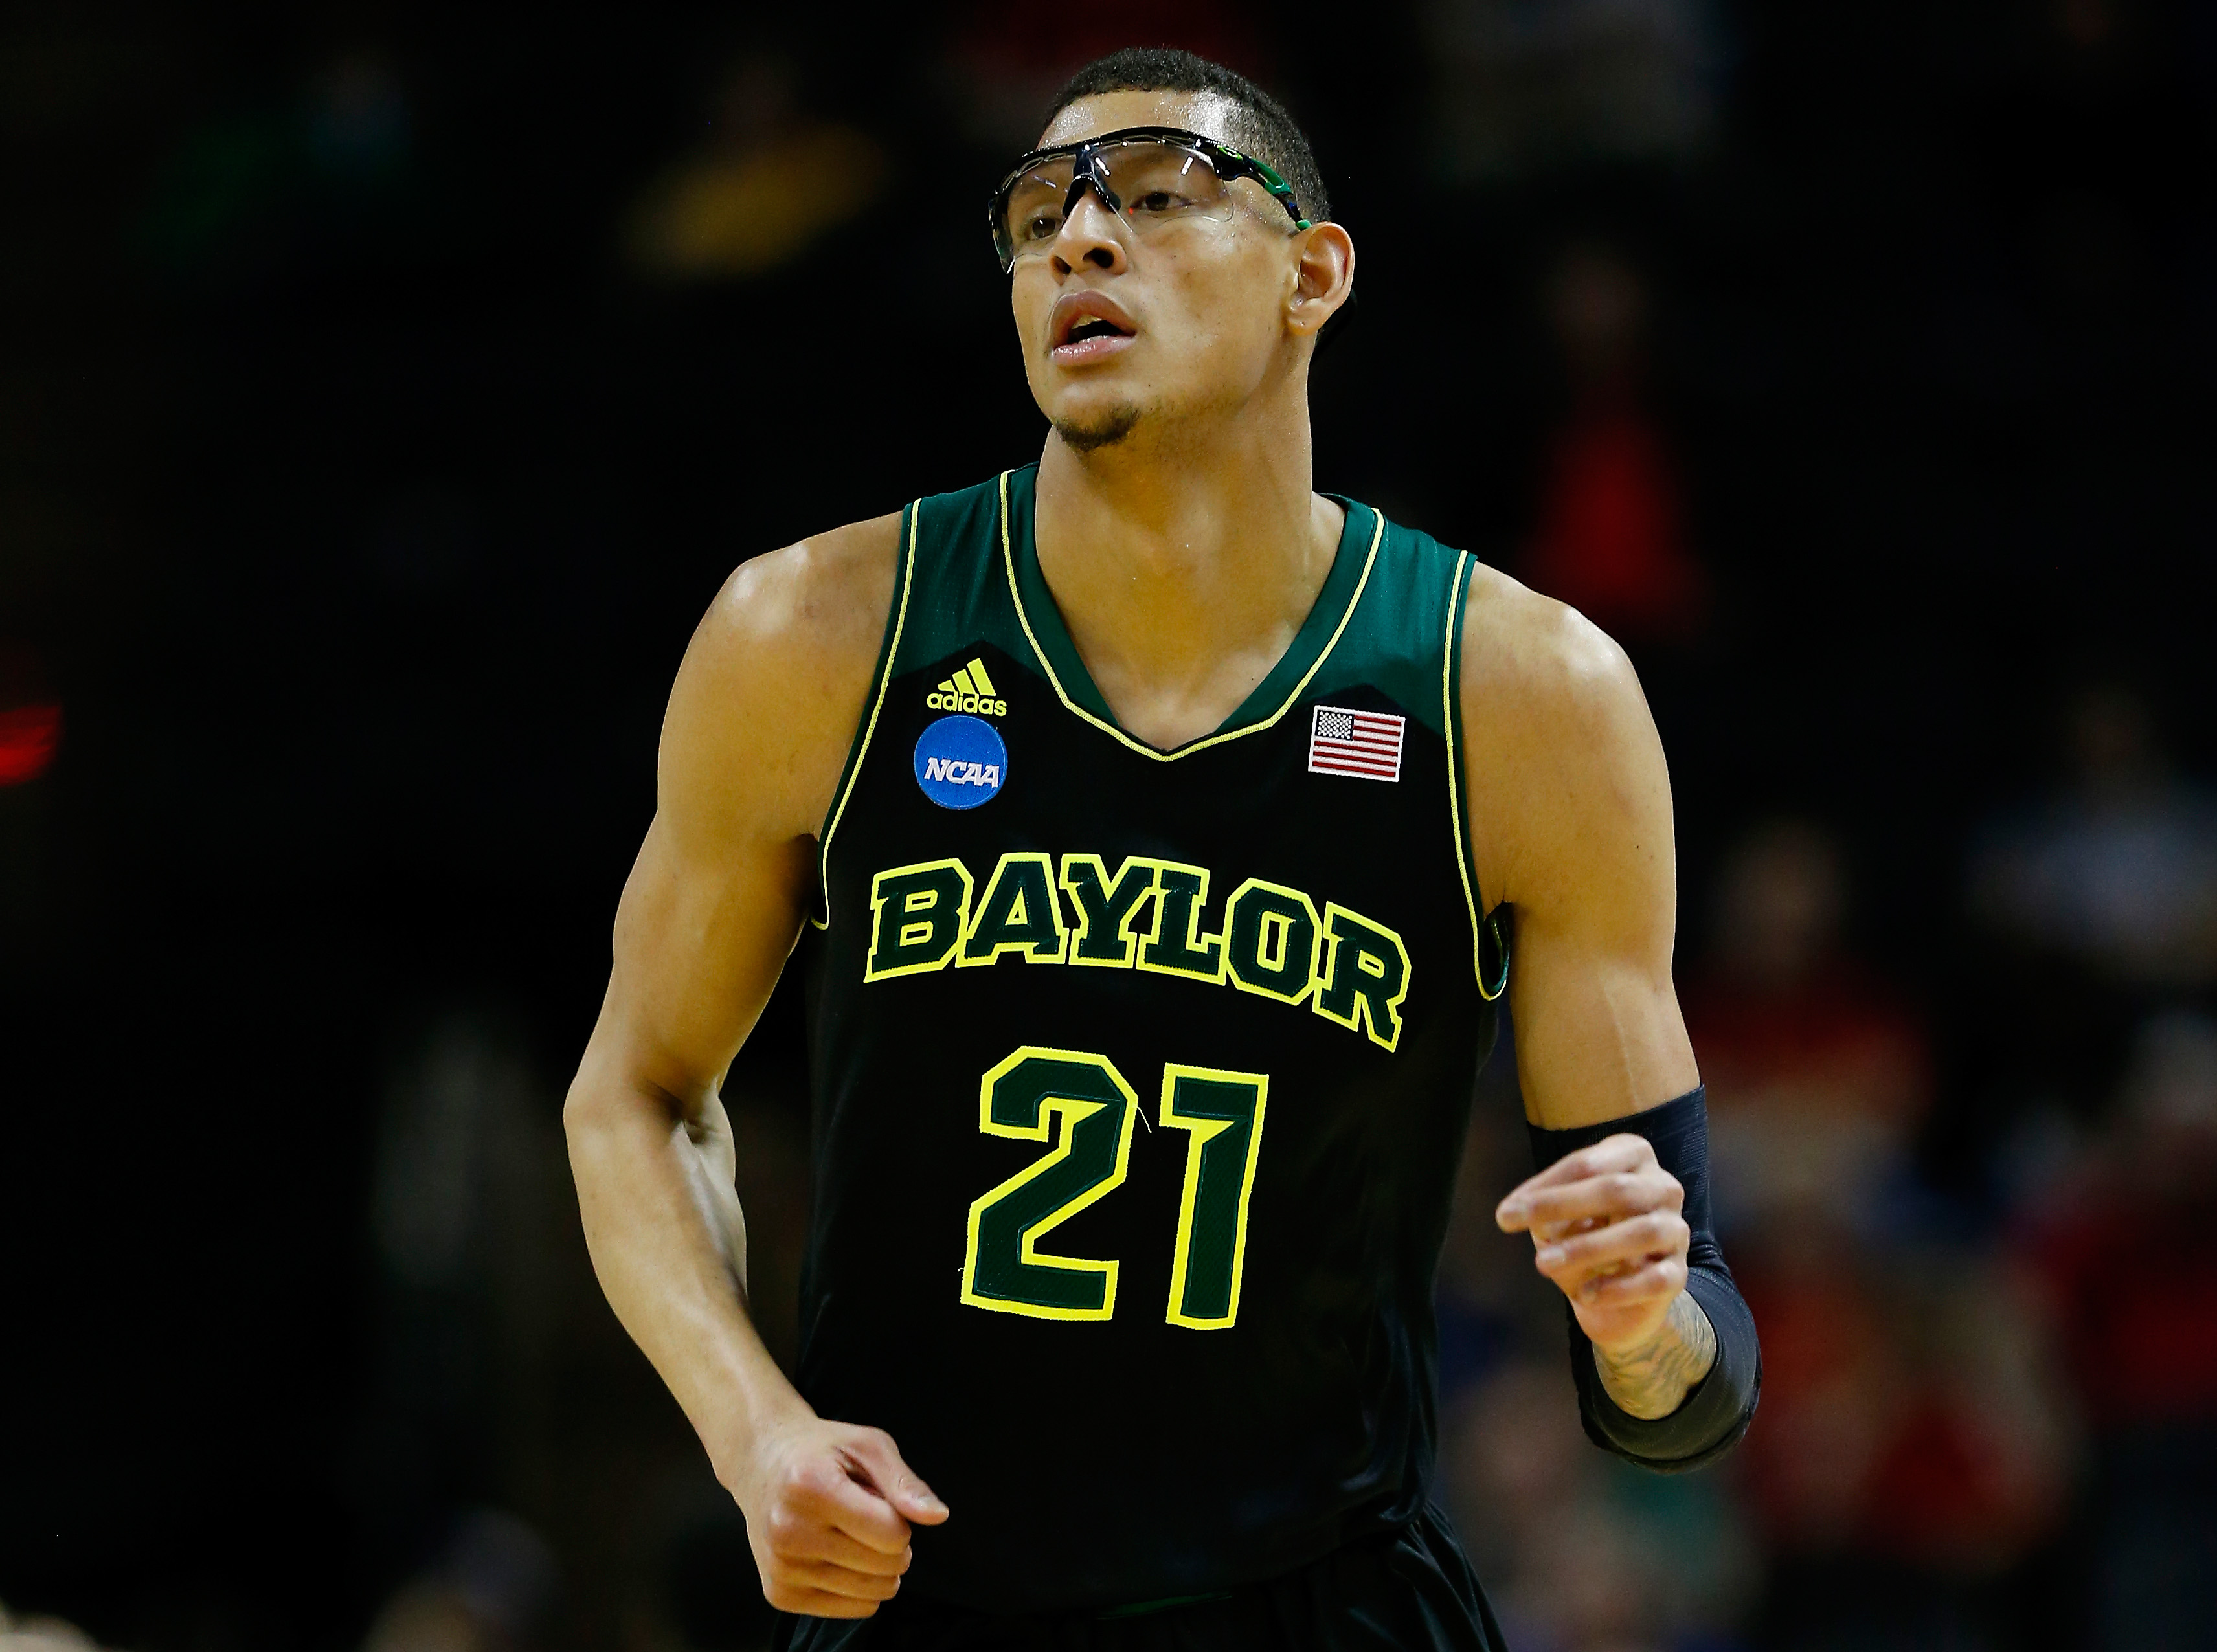 Baylor S Isaiah Austin Loses Nba Dream To Heart Issue